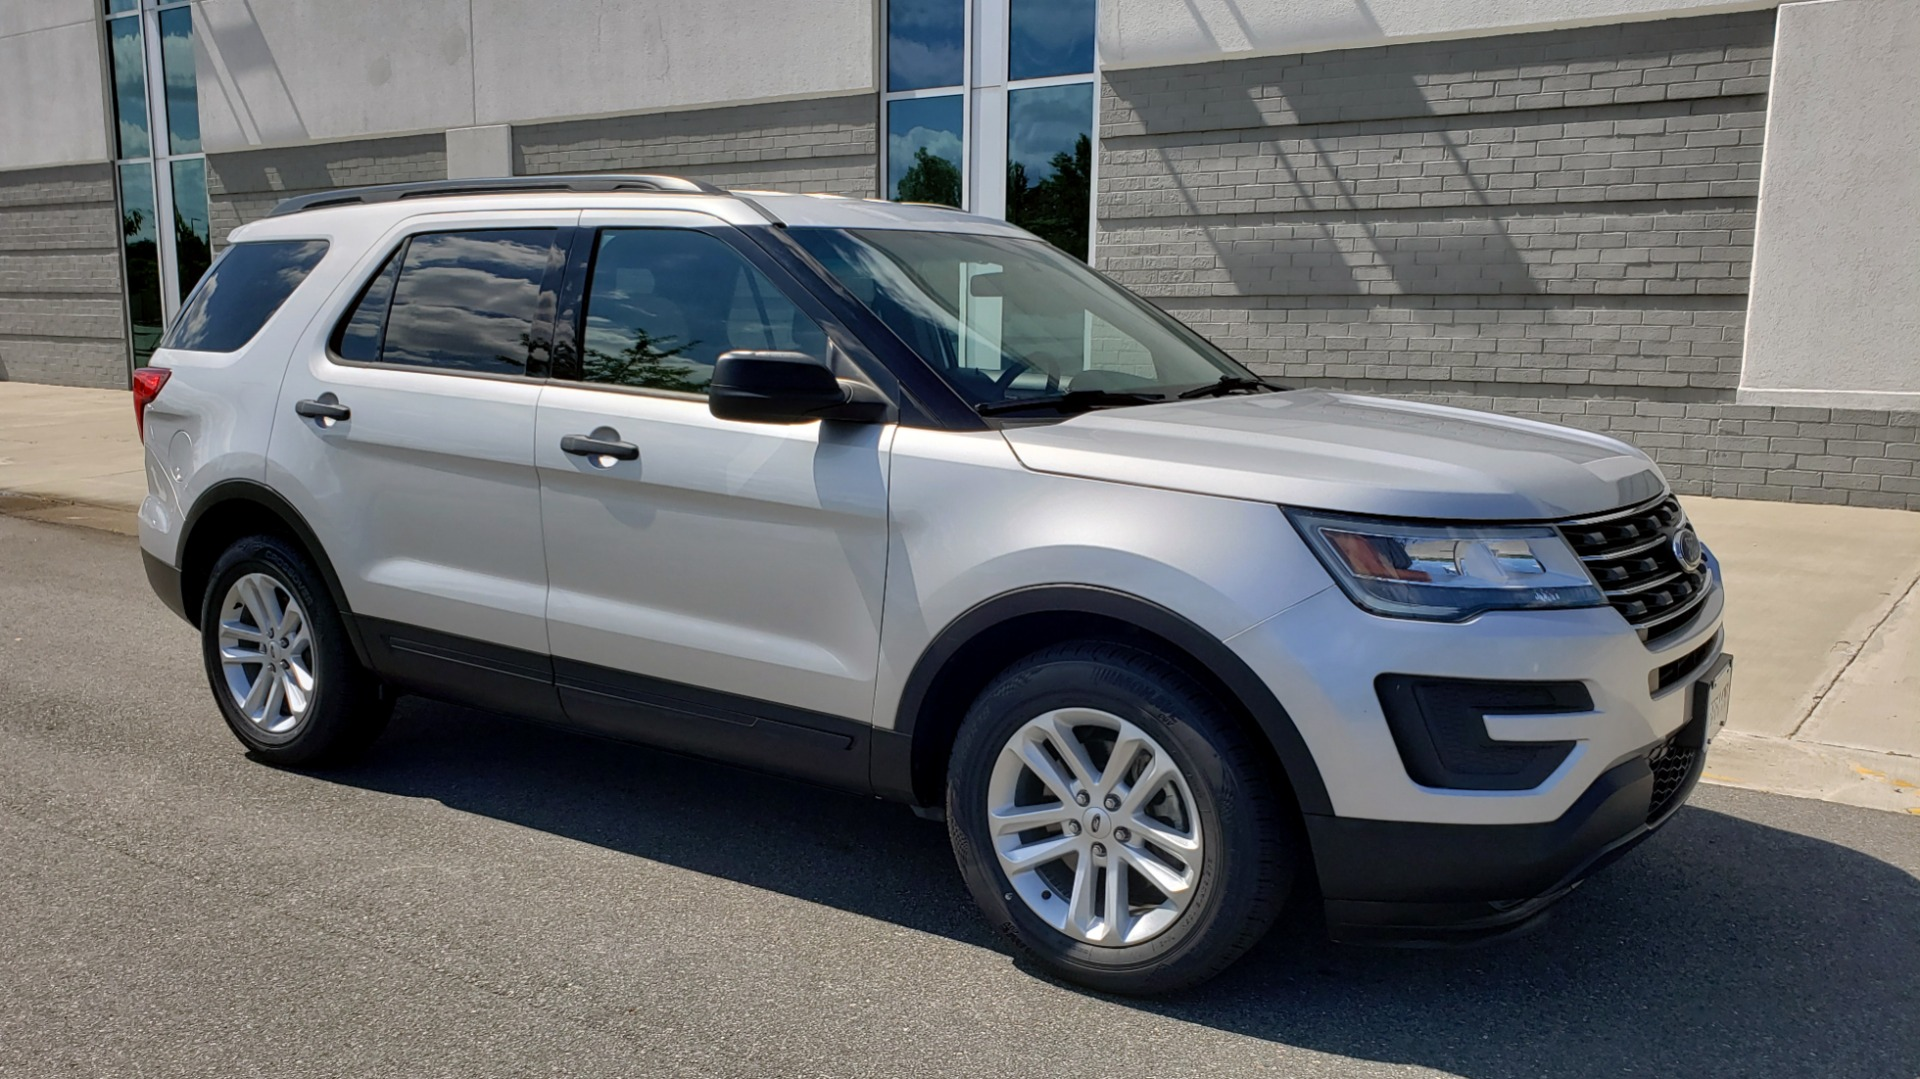 Used 2017 Ford EXPLORER 3.5L V6 / 6-SPD AUTO / BLIND SPOT MONITOR / 3-ROW / SYNC / REARVIEW for sale $22,995 at Formula Imports in Charlotte NC 28227 7